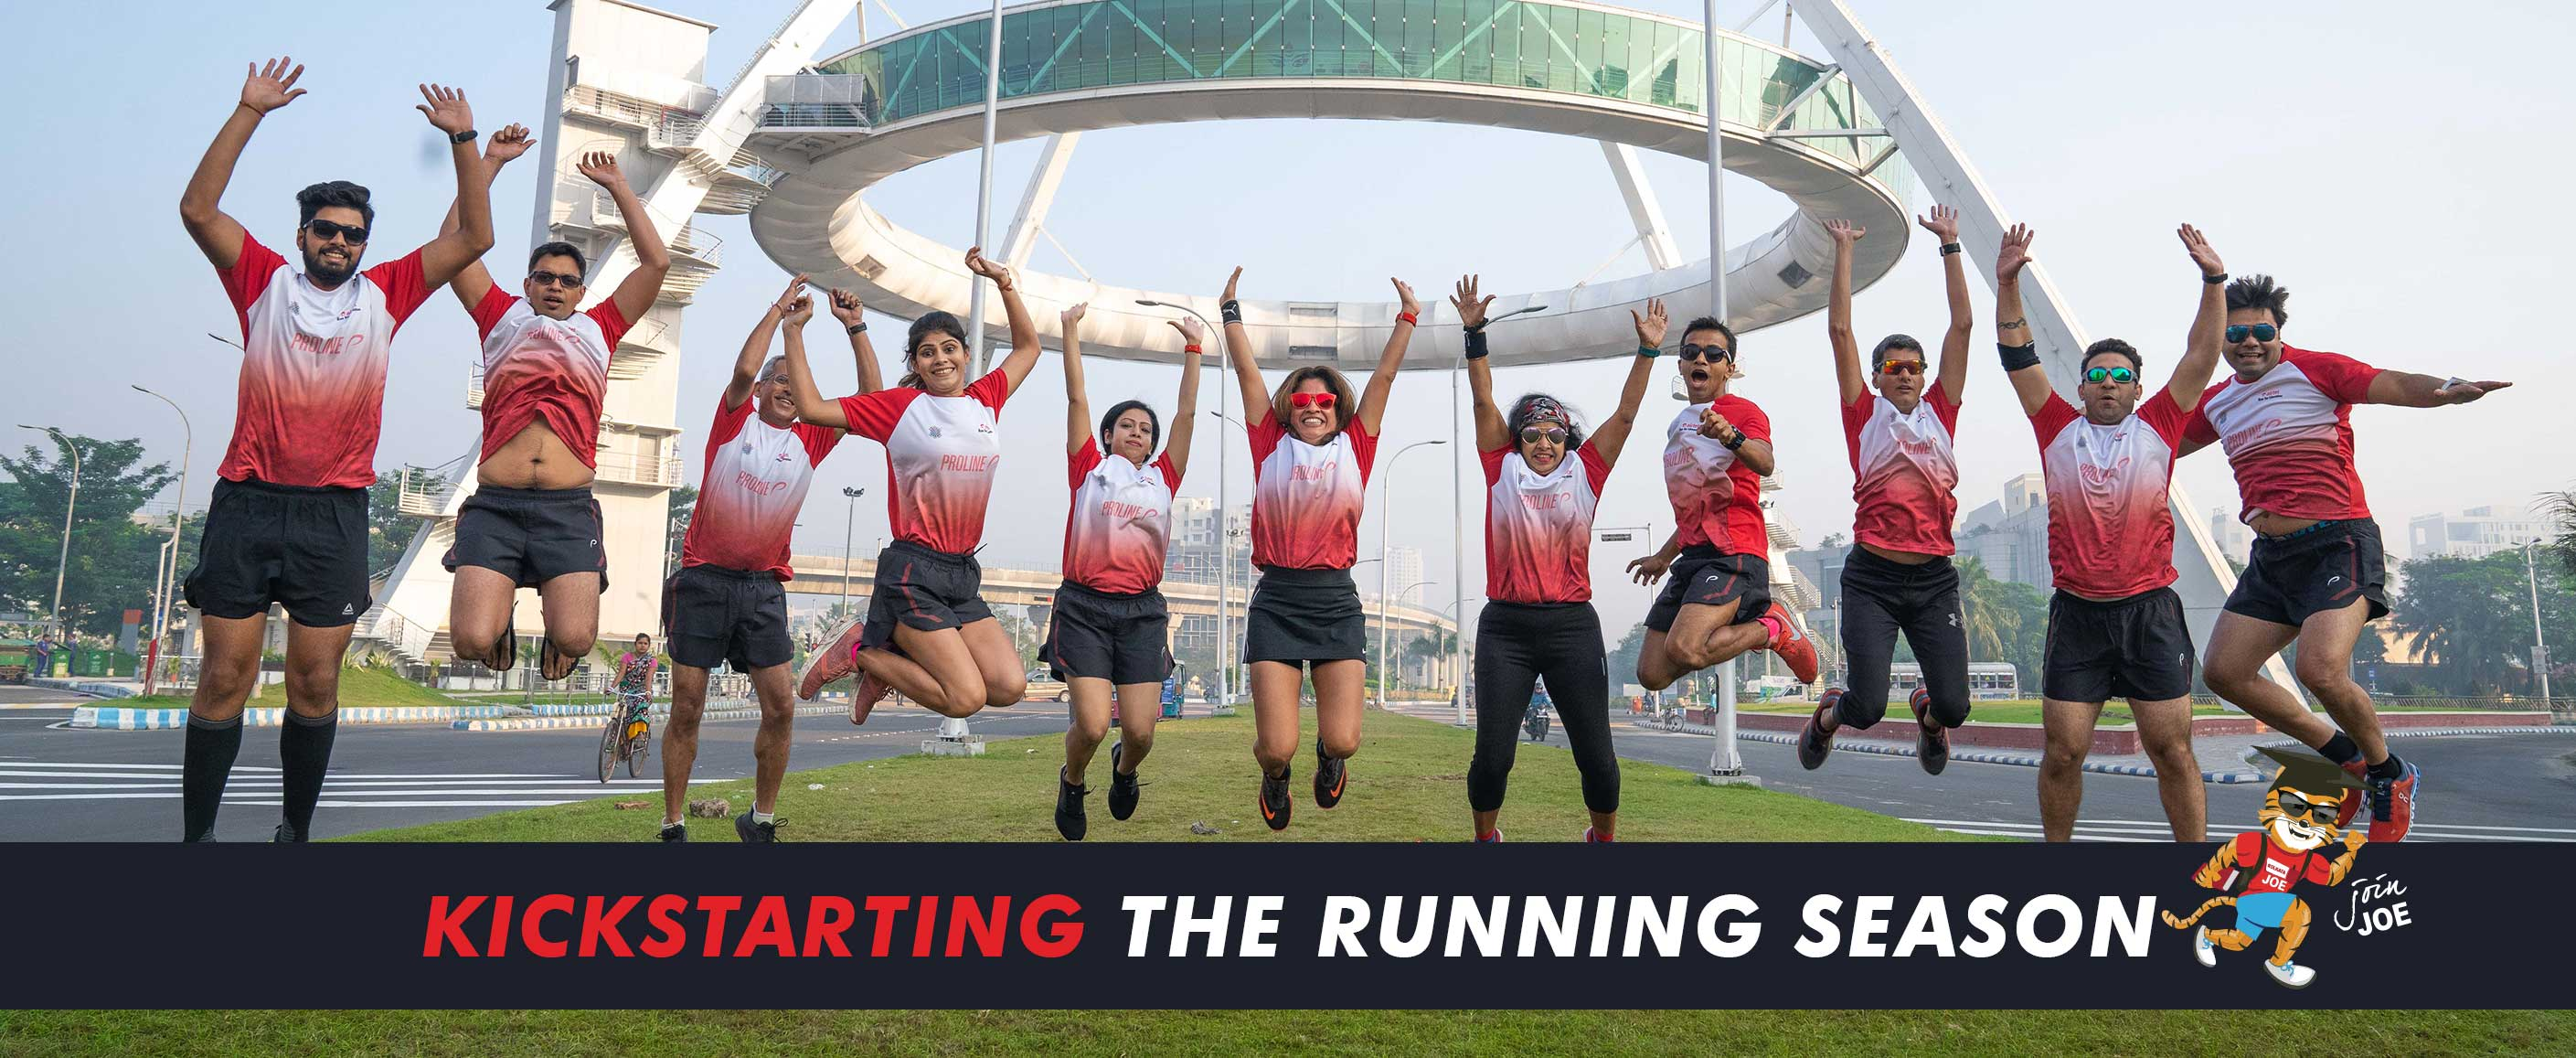 The Running Season Has Kick-started And We Cannot Keep Calm!